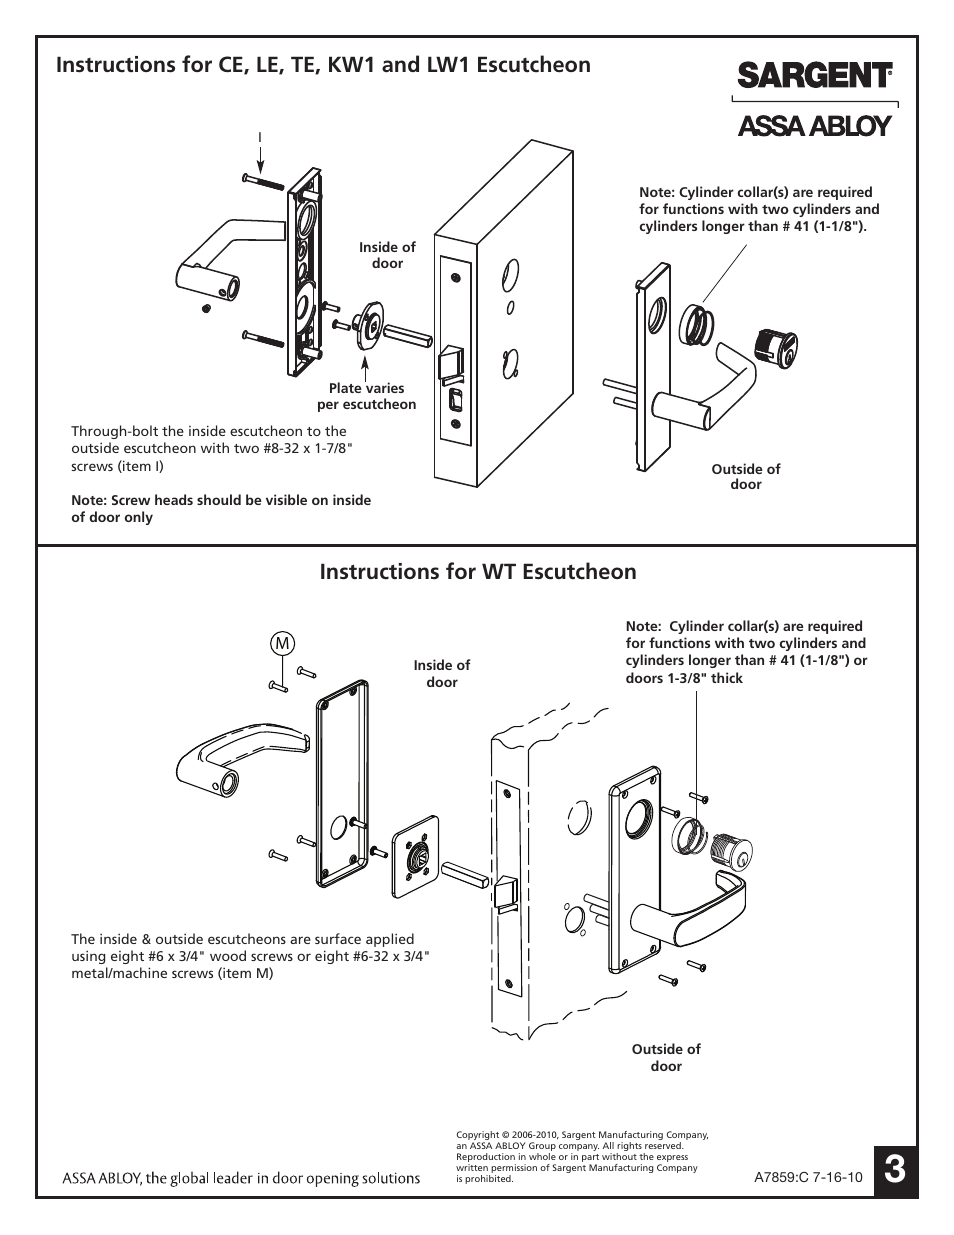 Instructions For Wt Escutcheon Sargent 7900 Mortise Lock User Diagram Manual Page 3 4